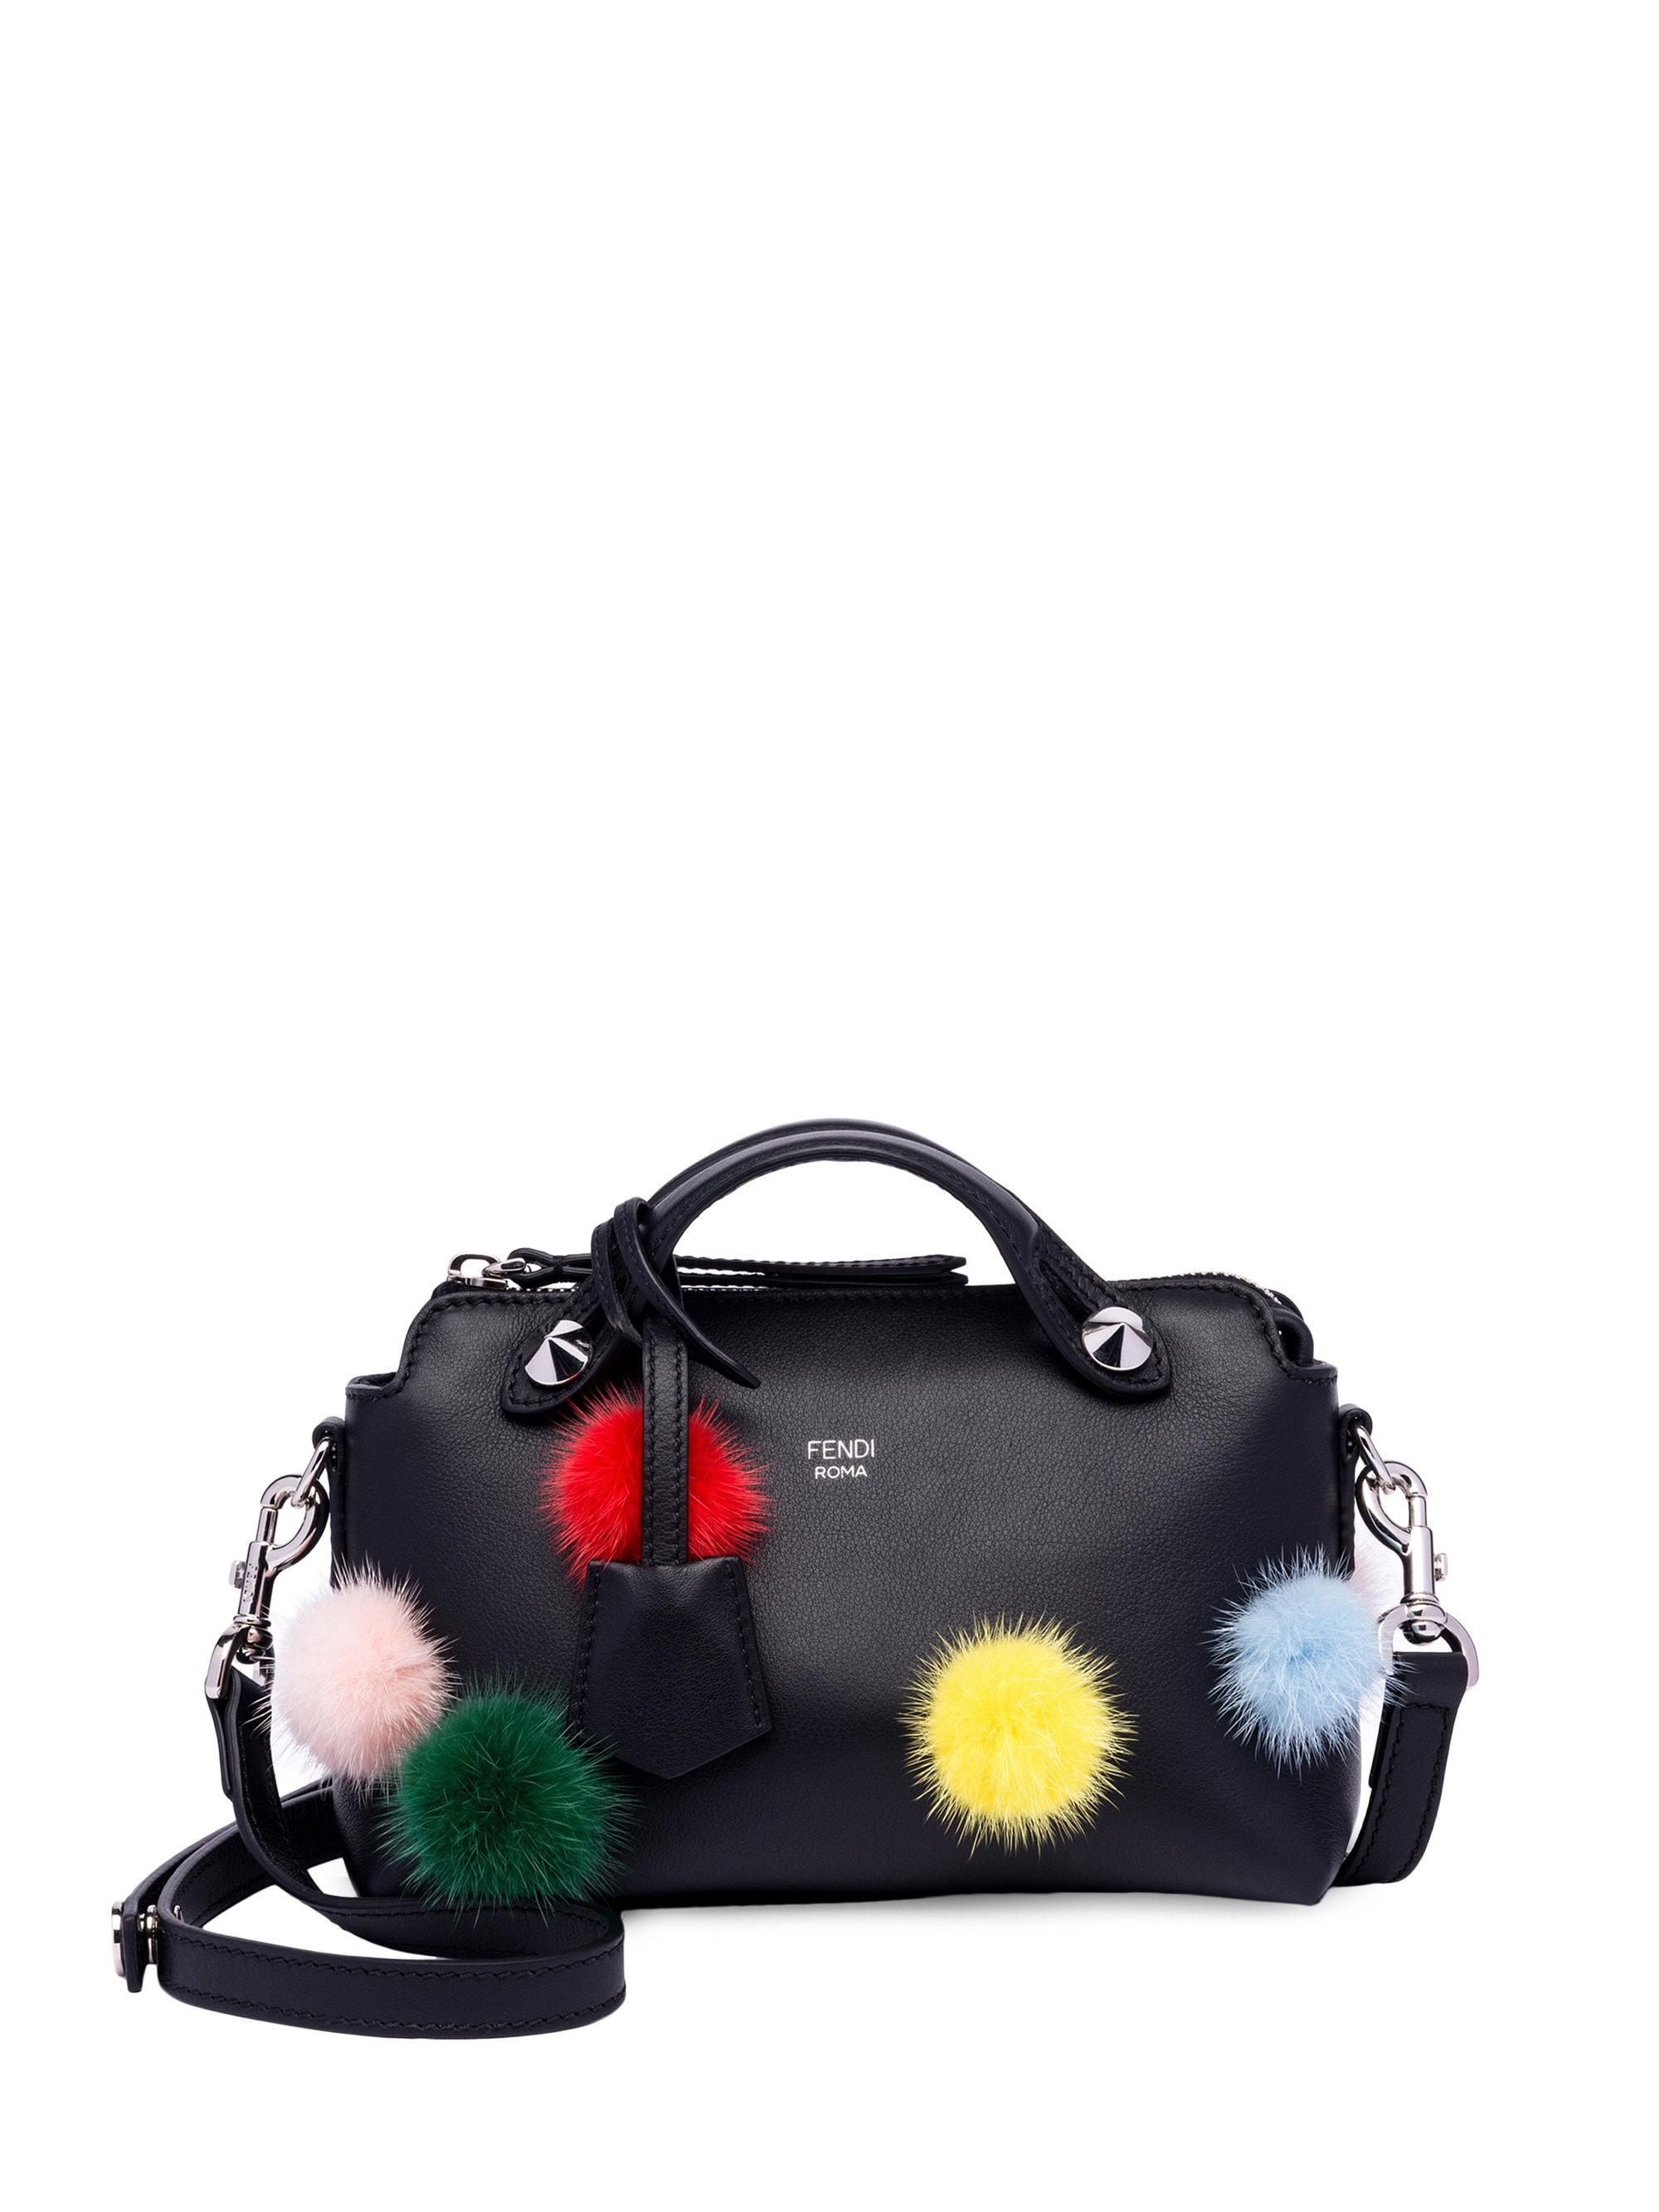 Fendi By The Way pom pom tote Clearance New Arrival Popular Cheap Online Free Shipping Fashionable Discount Really gLS44F